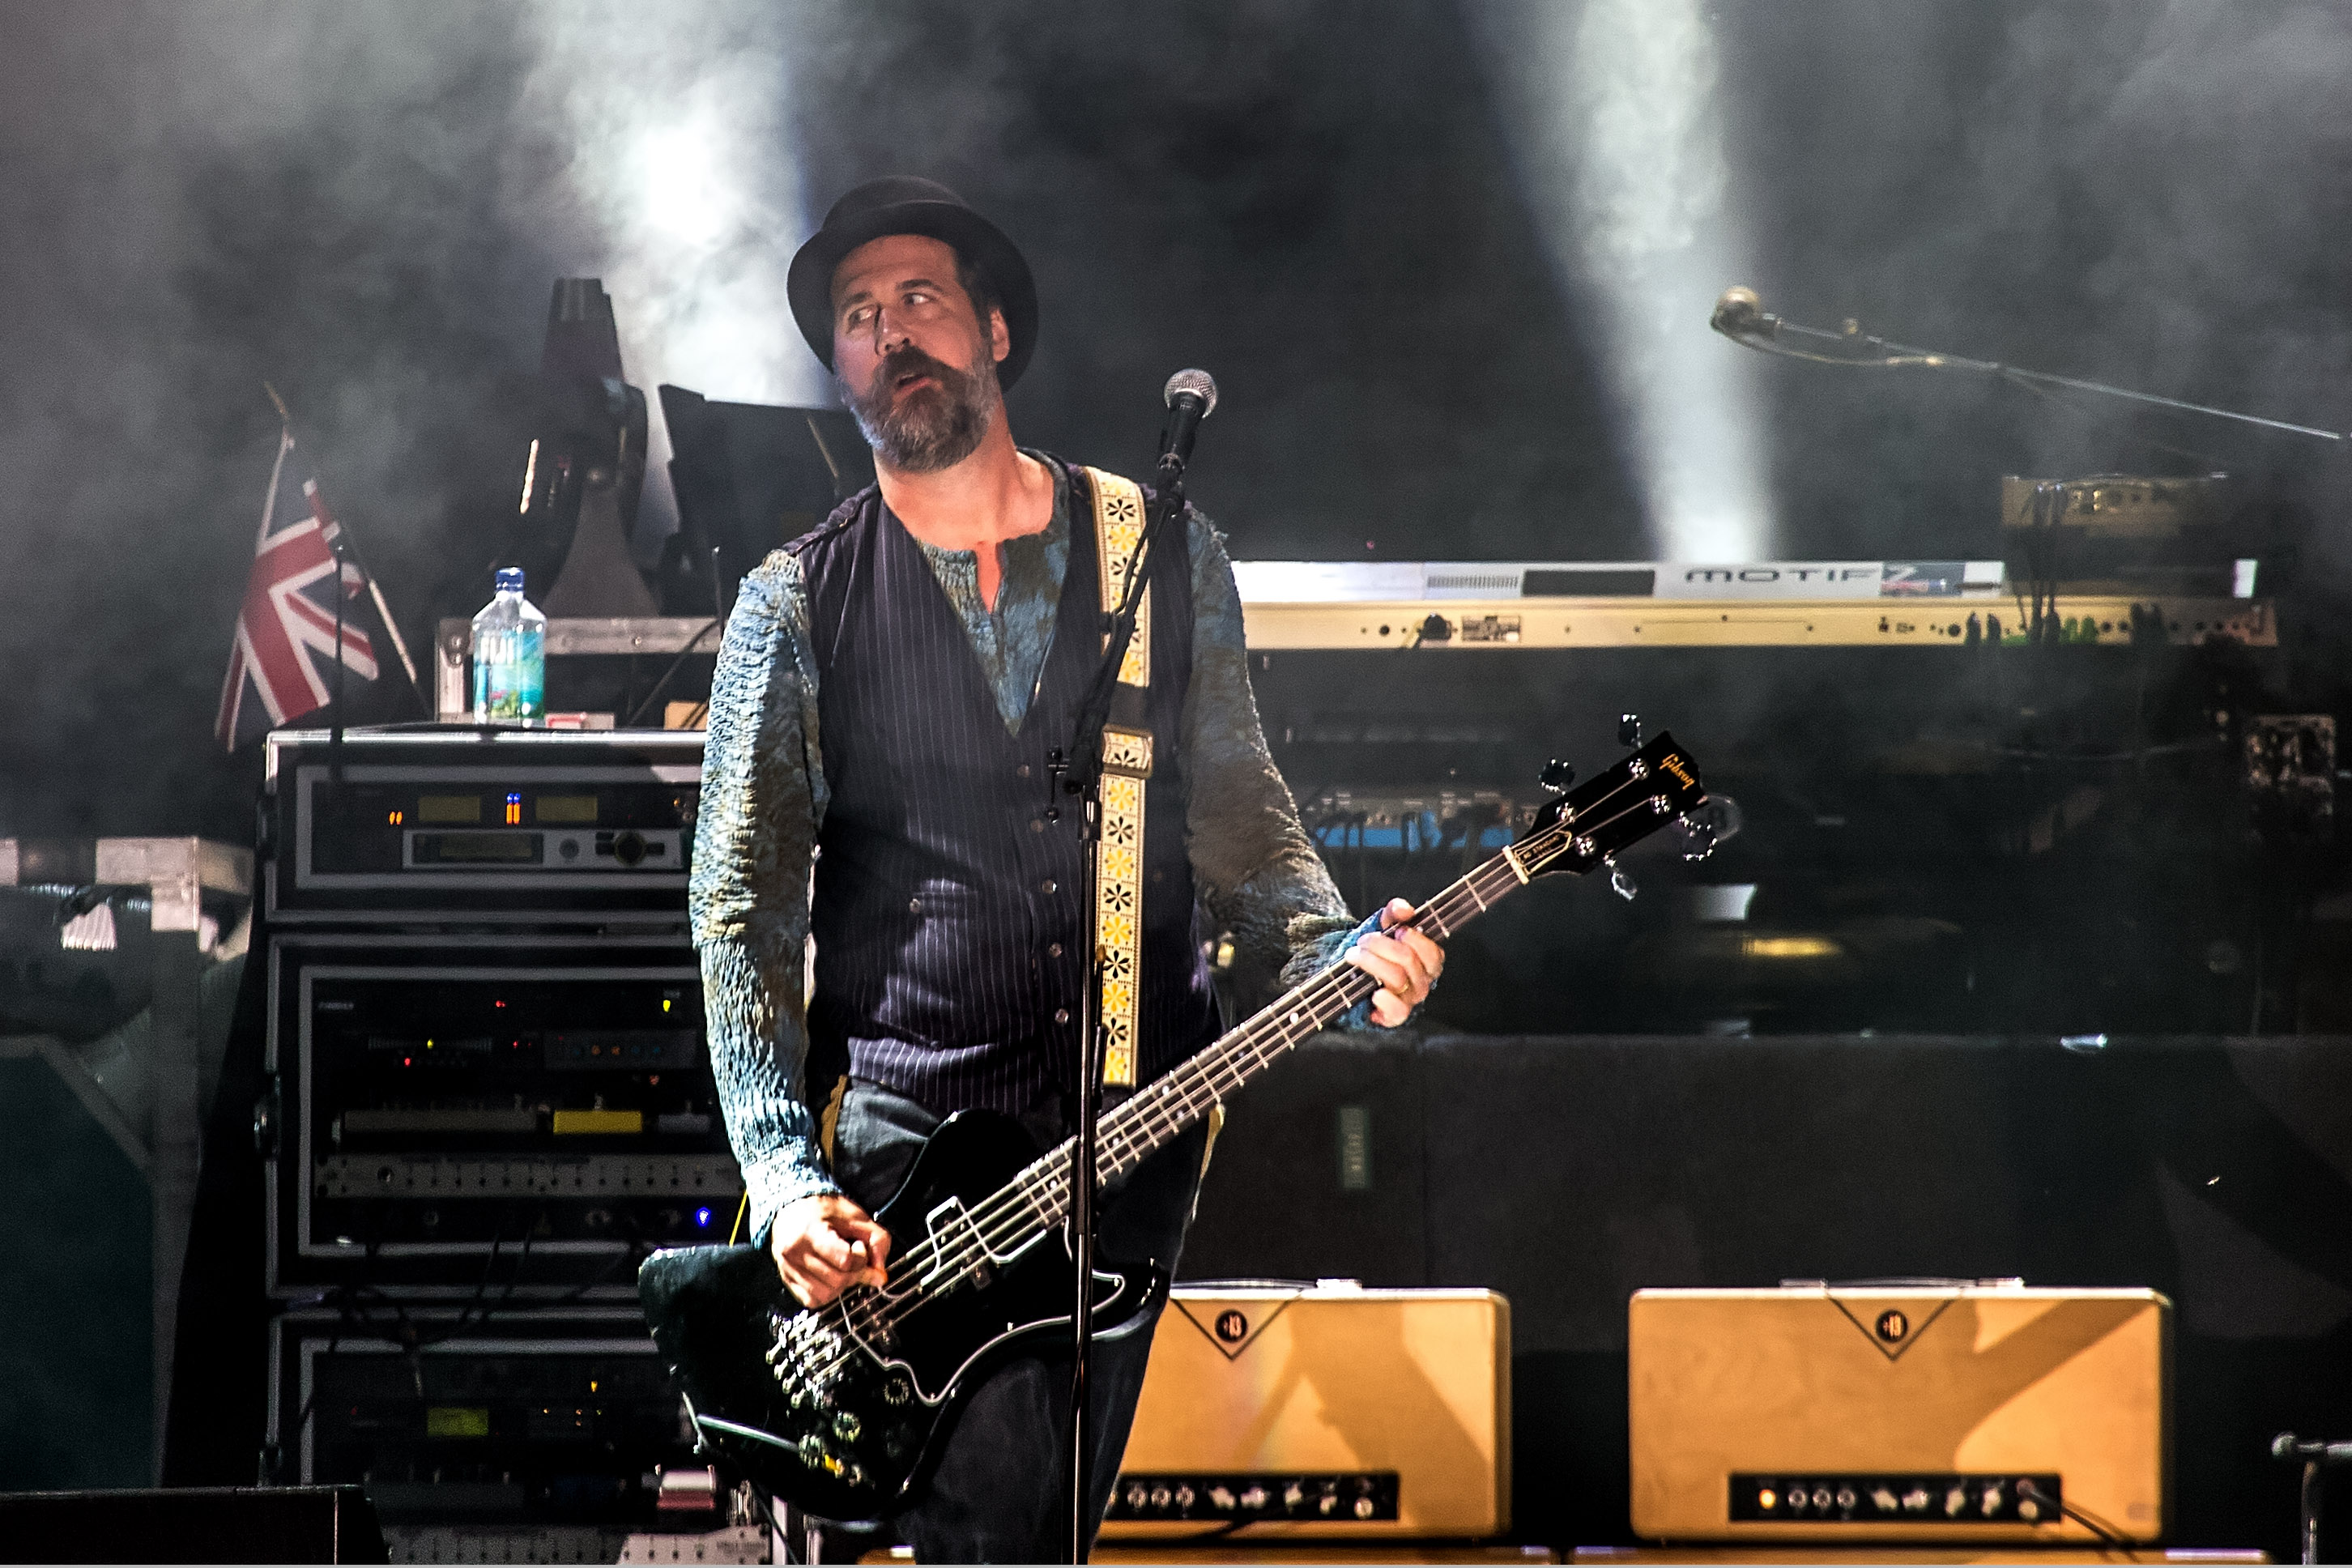 SEATTLE, WA - JULY 19:  Krist Novoselic performs live at Safeco Field on July 19, 2013 in Seattle, Washington.  (Photo by Suz